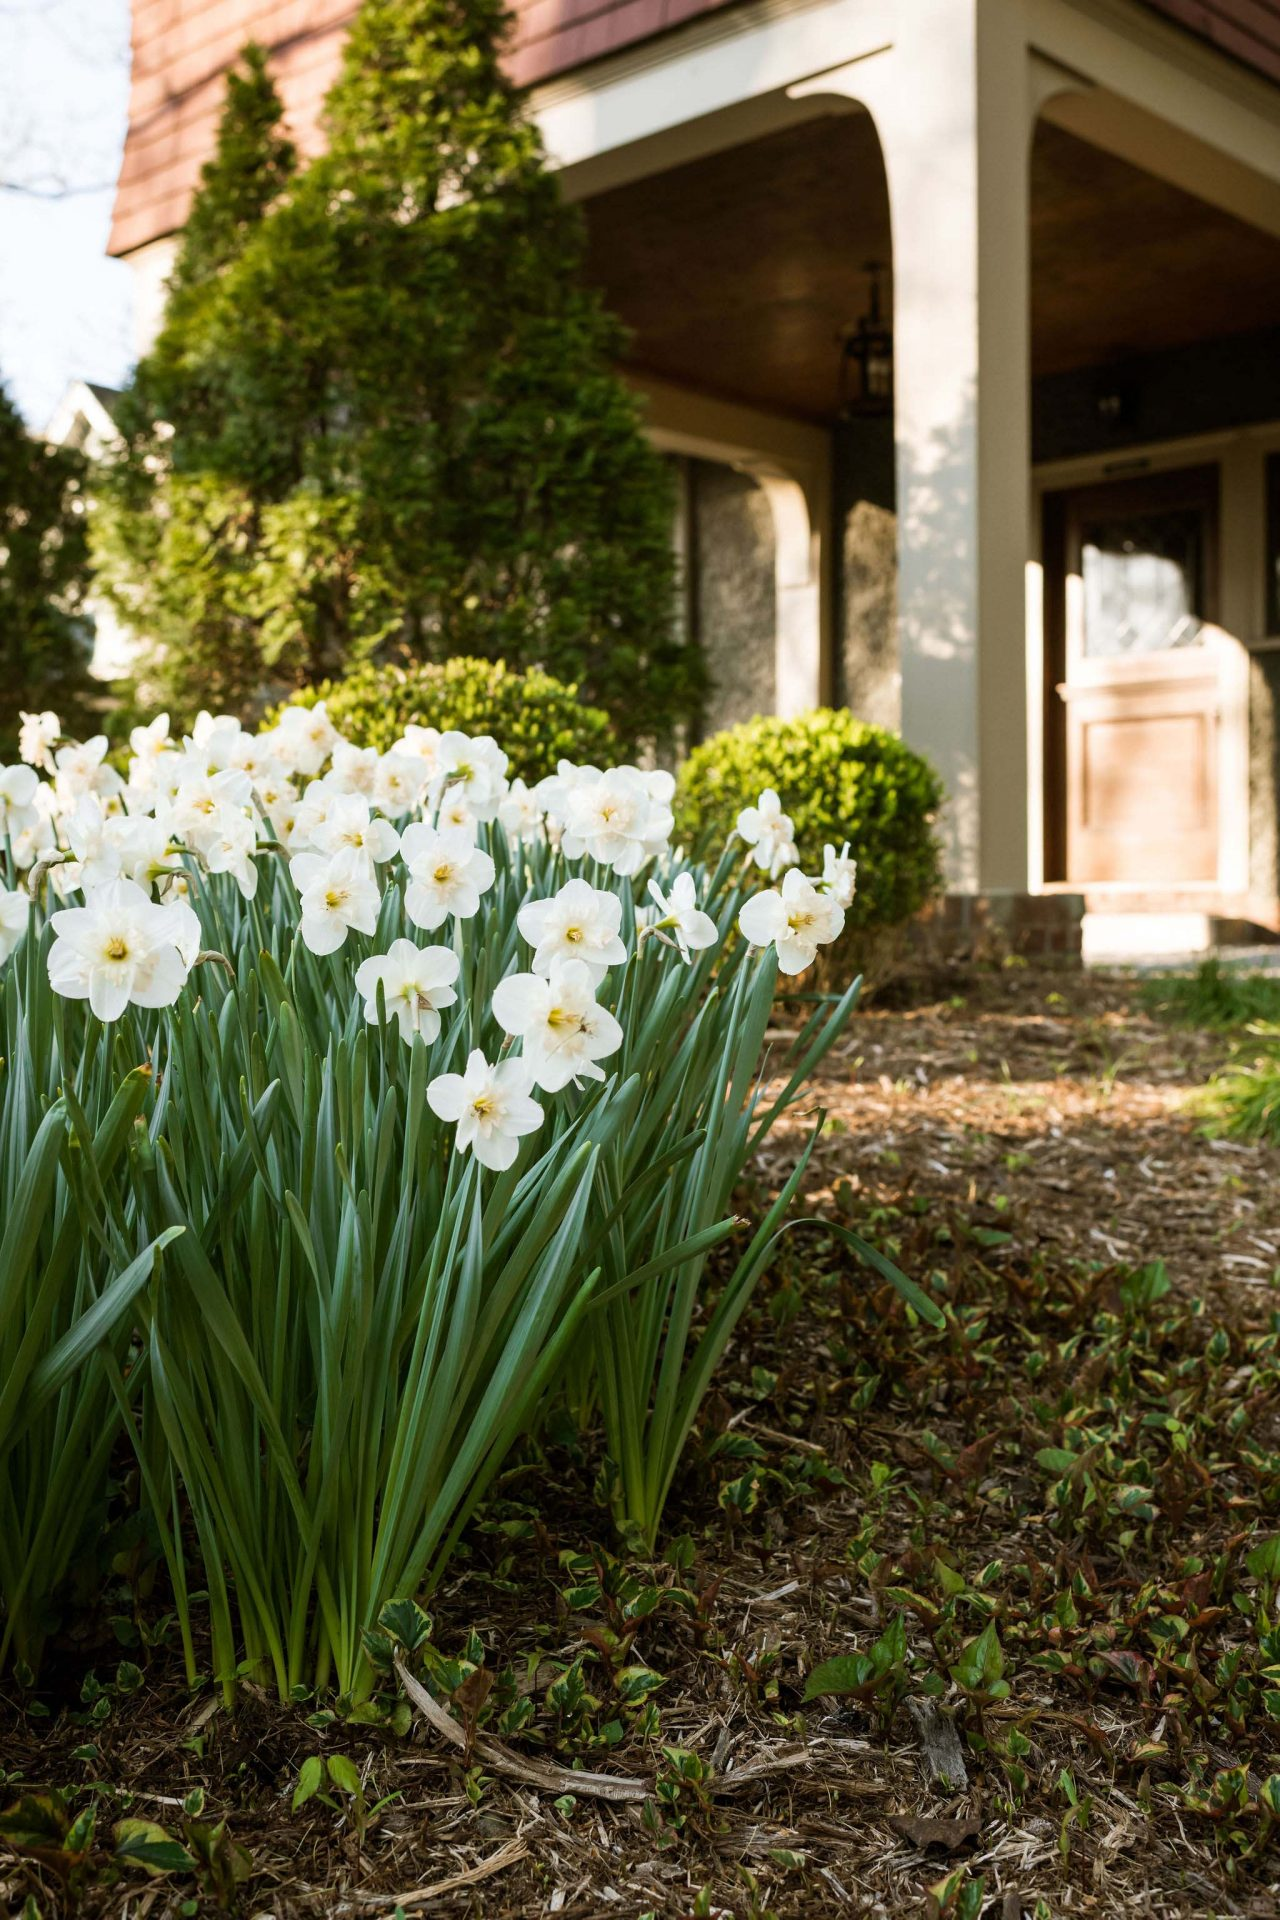 A cloese-up of the white daffodils in the backyard of the Asheville bed and breakfast.